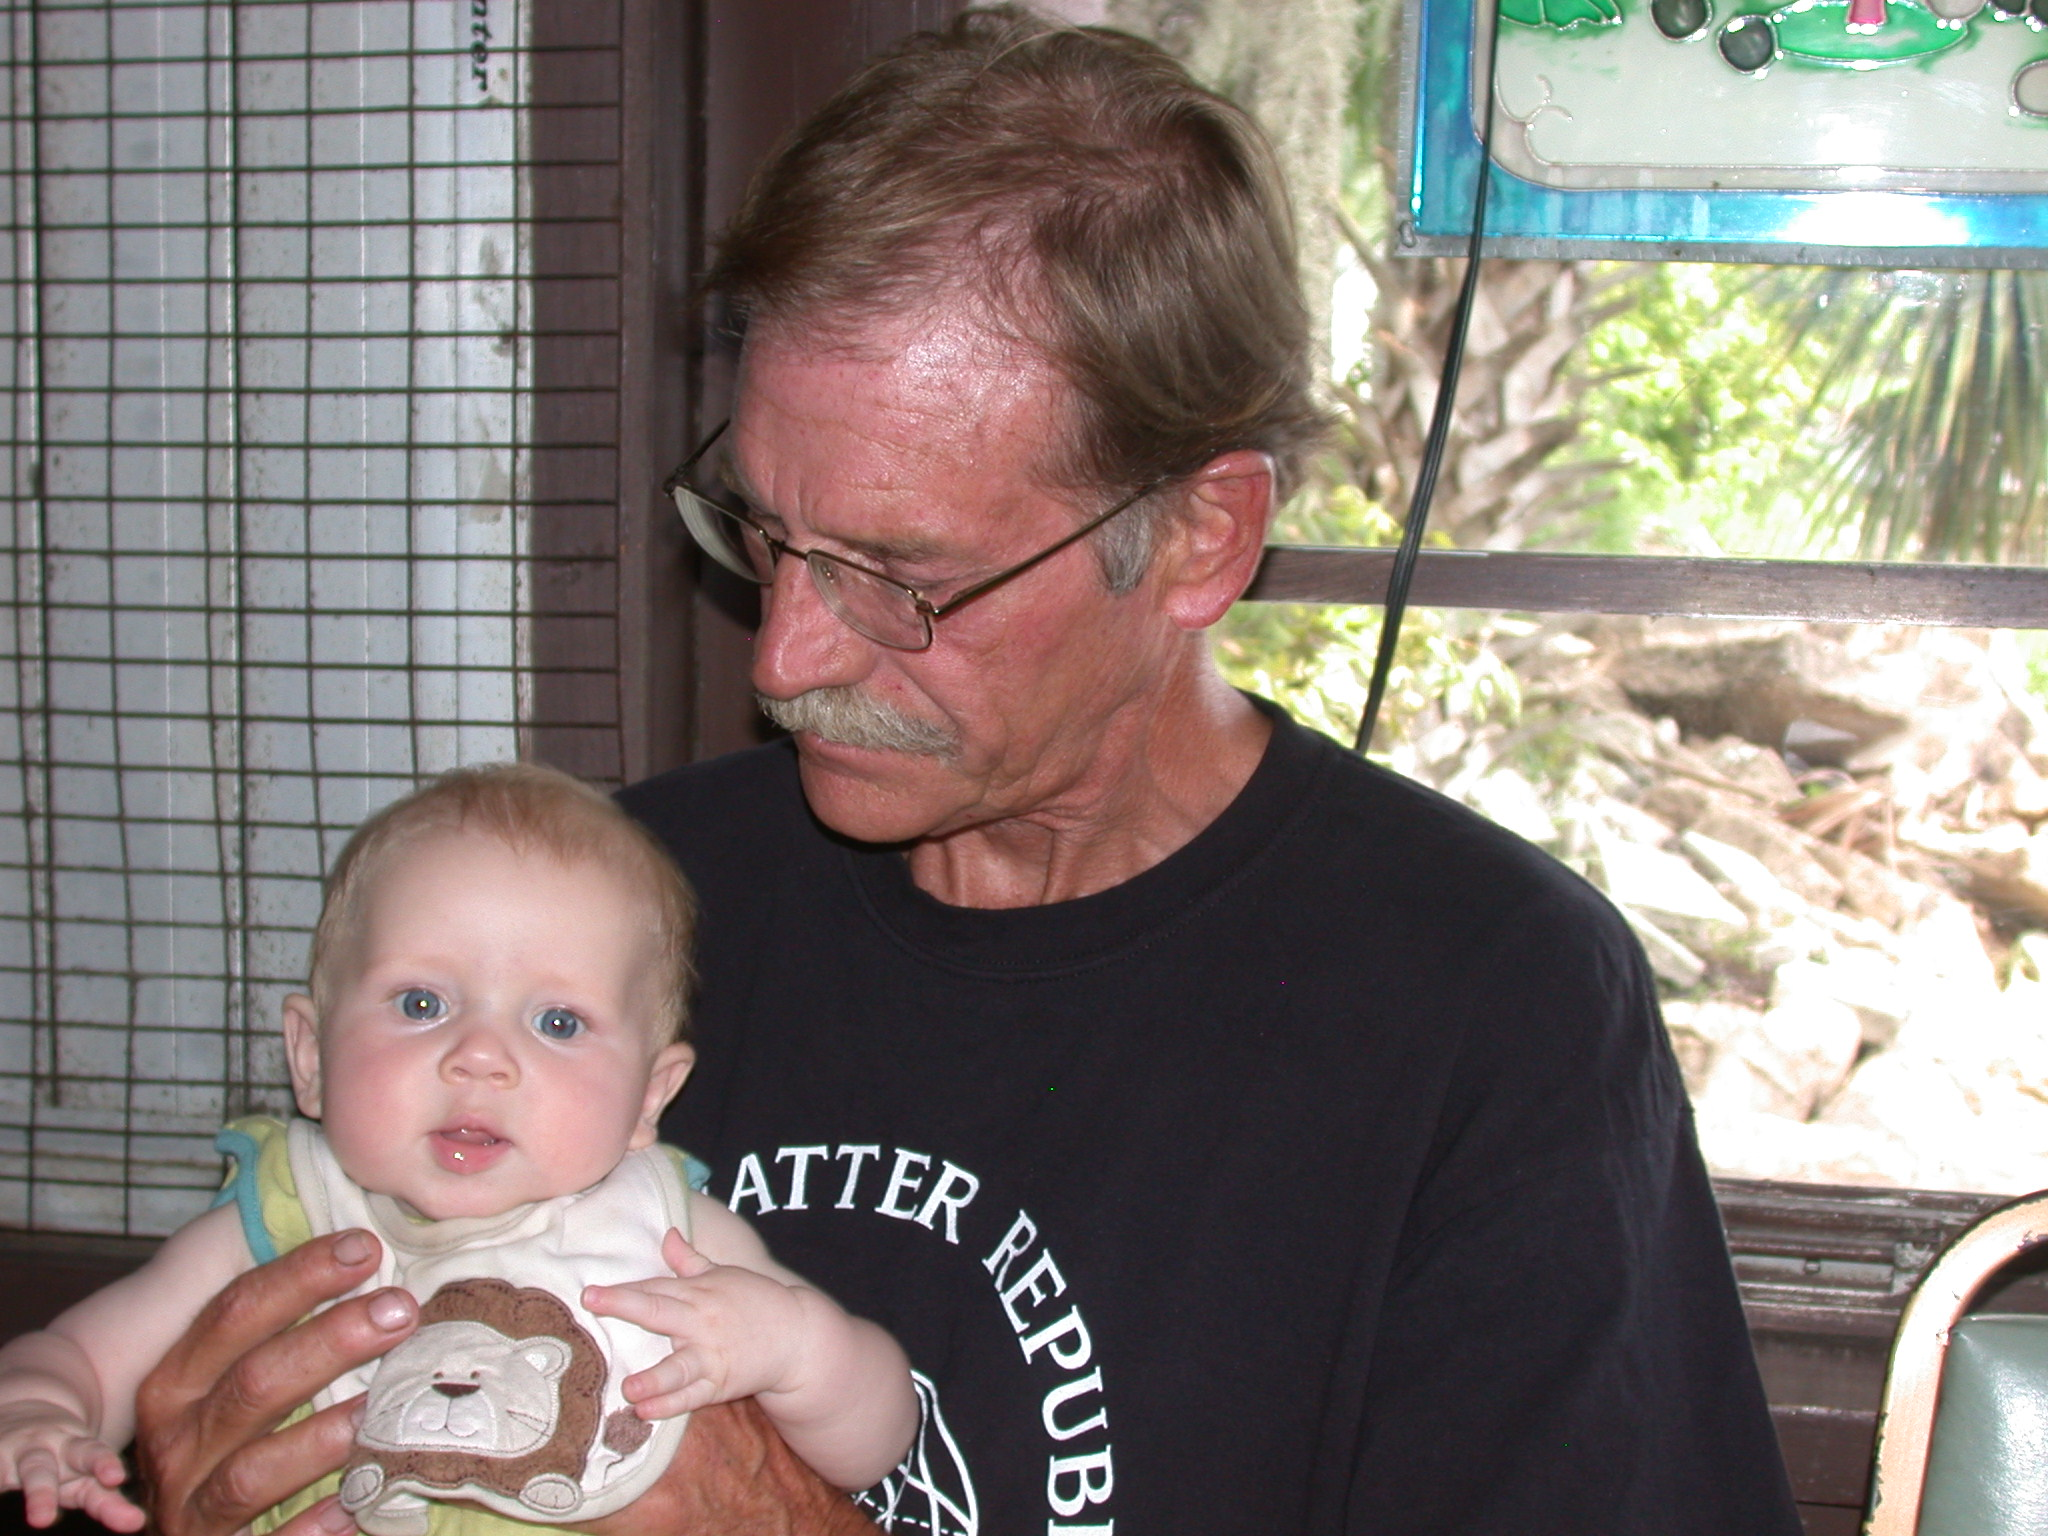 Larry, holding his first grandchild. We will miss you.